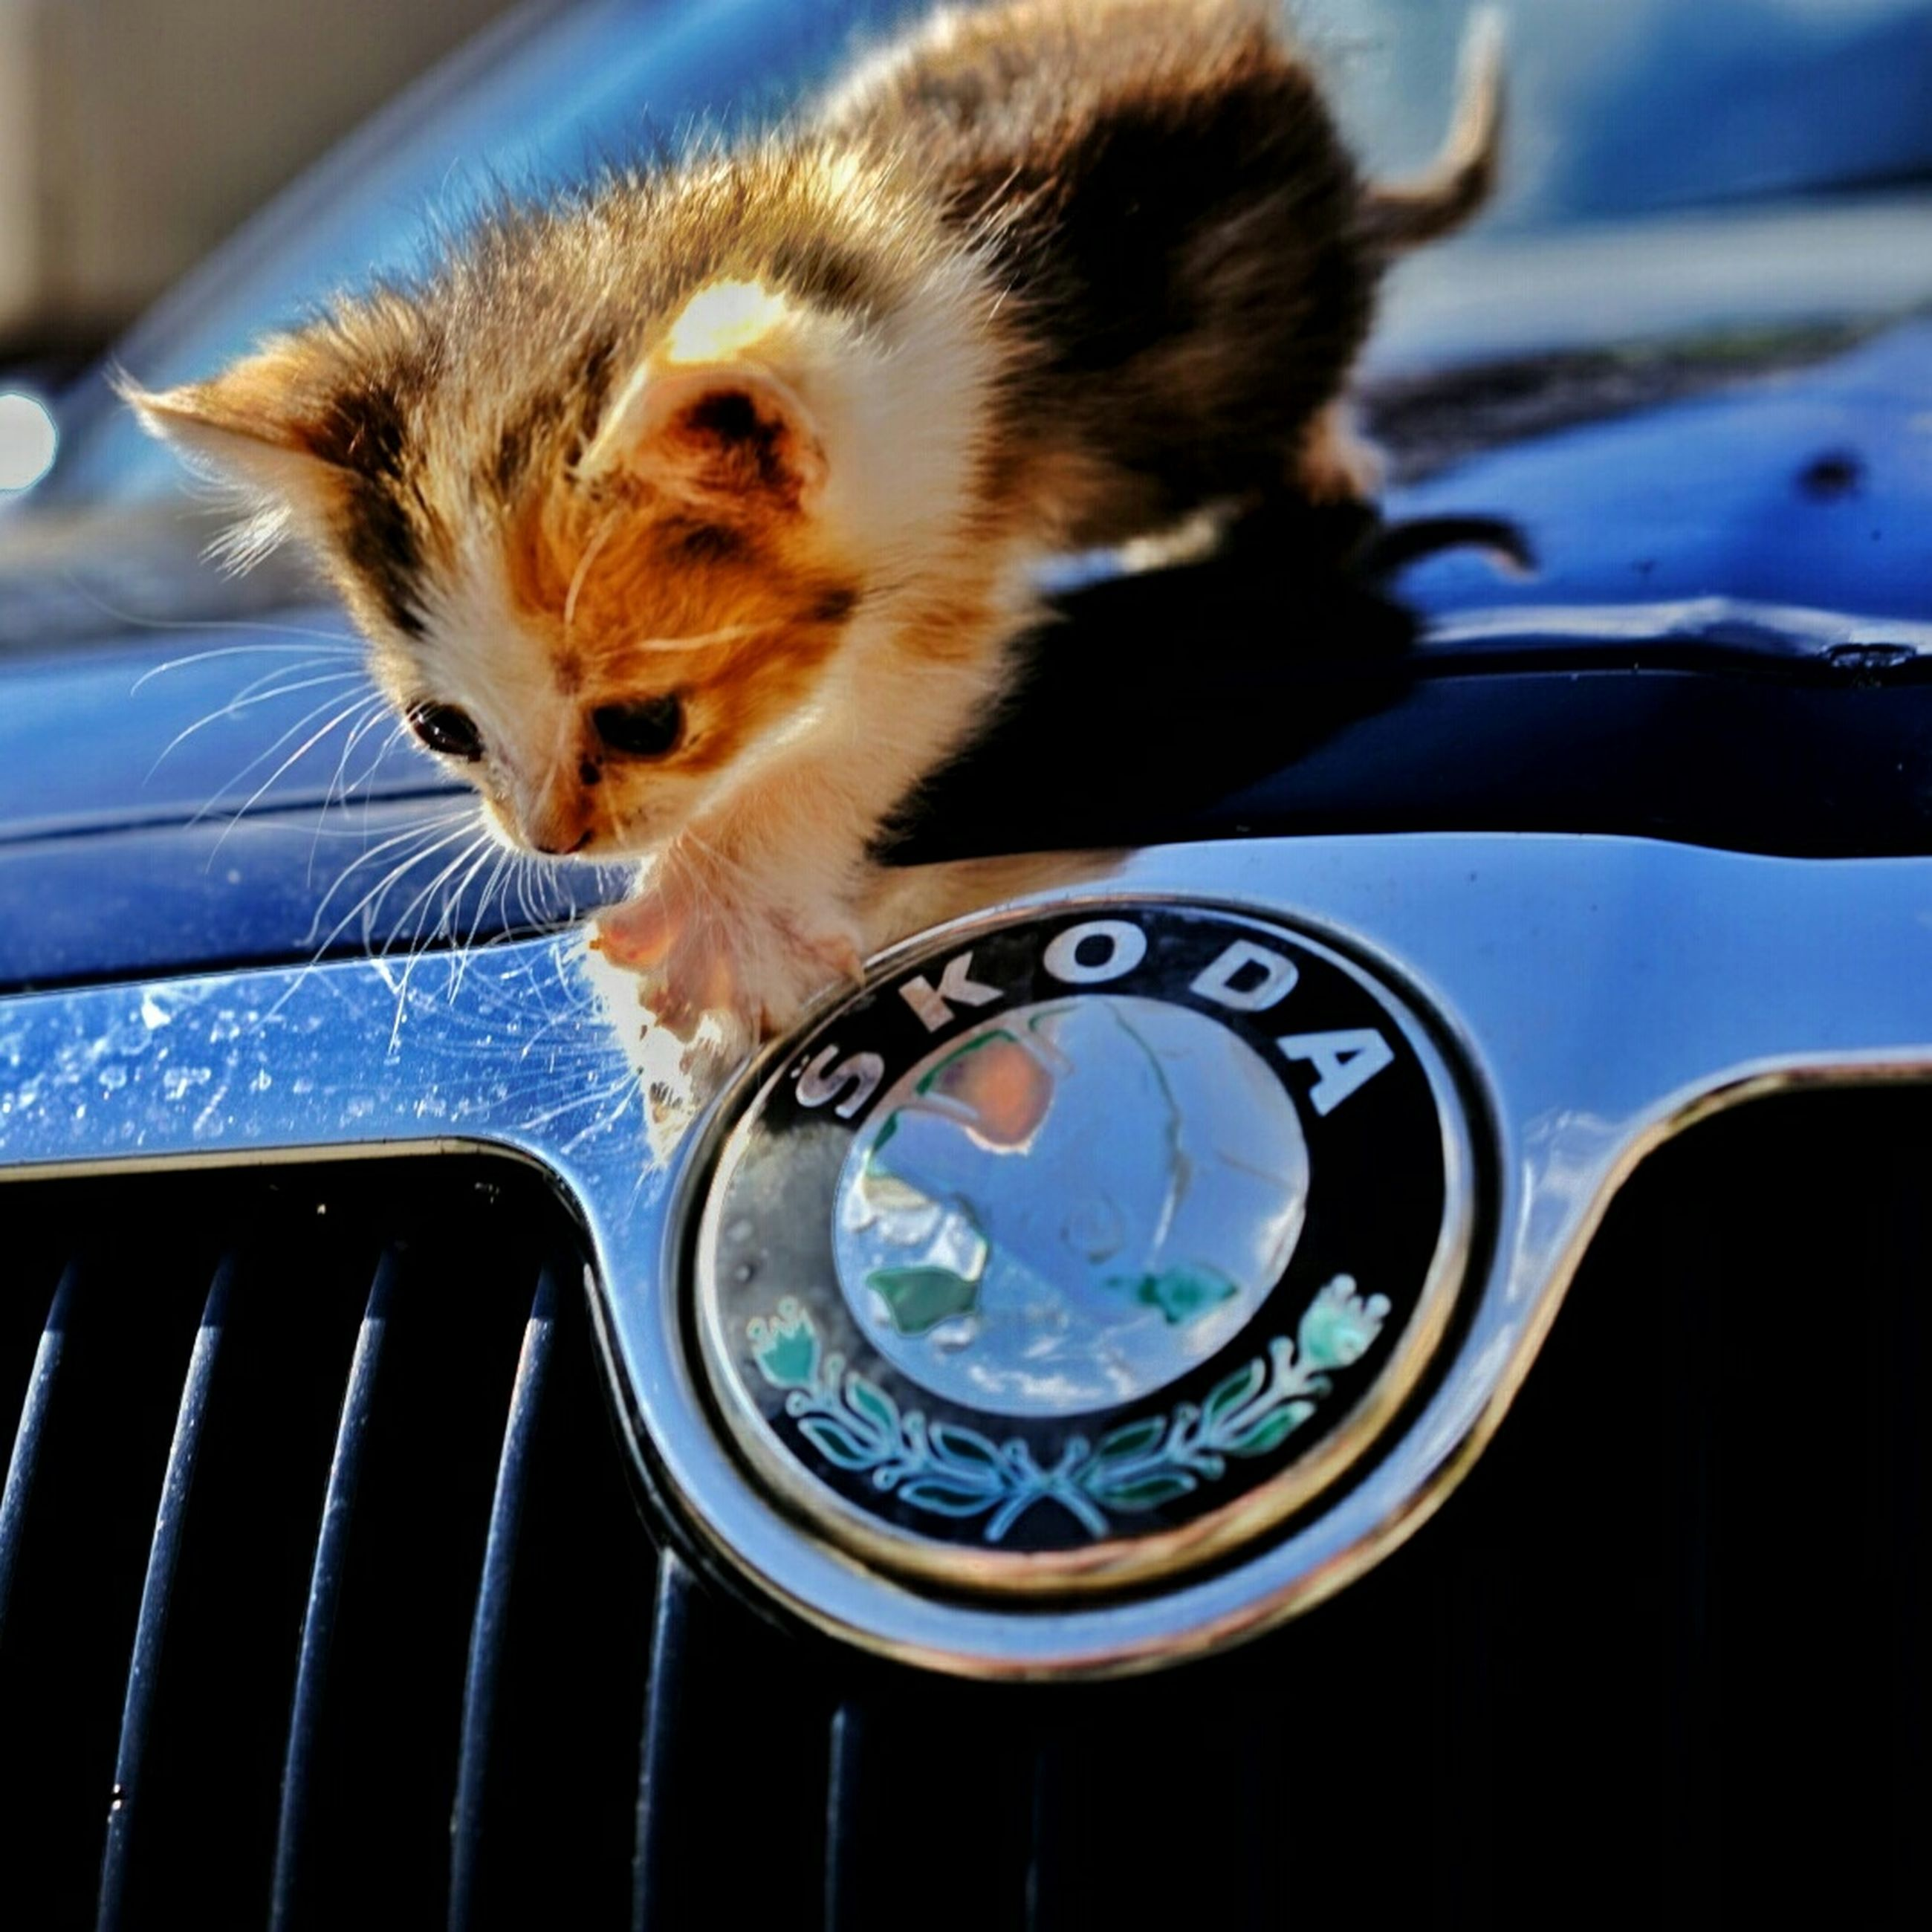 animal themes, one animal, close-up, car, mammal, indoors, transportation, mode of transport, land vehicle, focus on foreground, pets, no people, communication, car interior, day, domestic animals, technology, part of, high angle view, front view